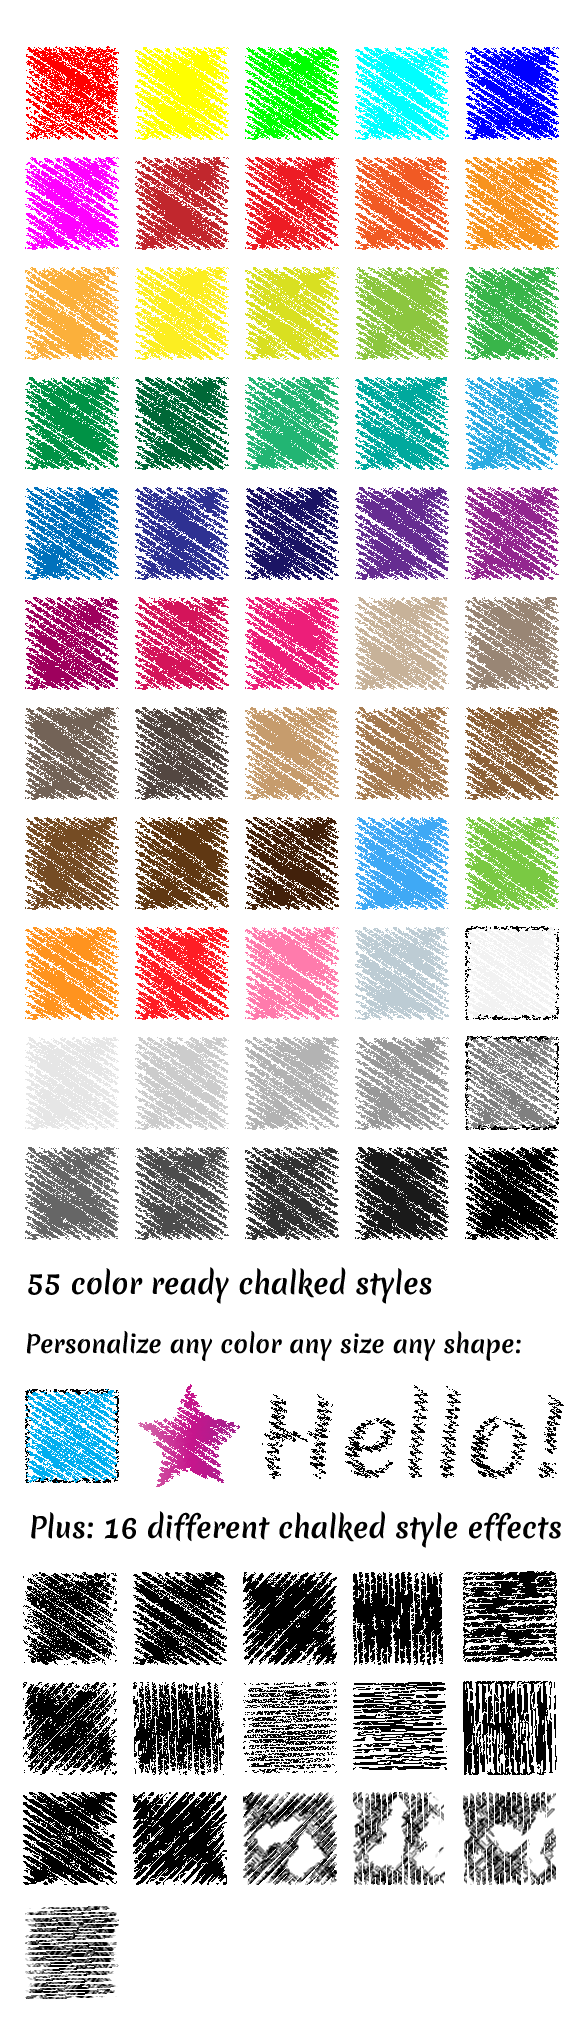 Vector Chalked Styles Illustrator